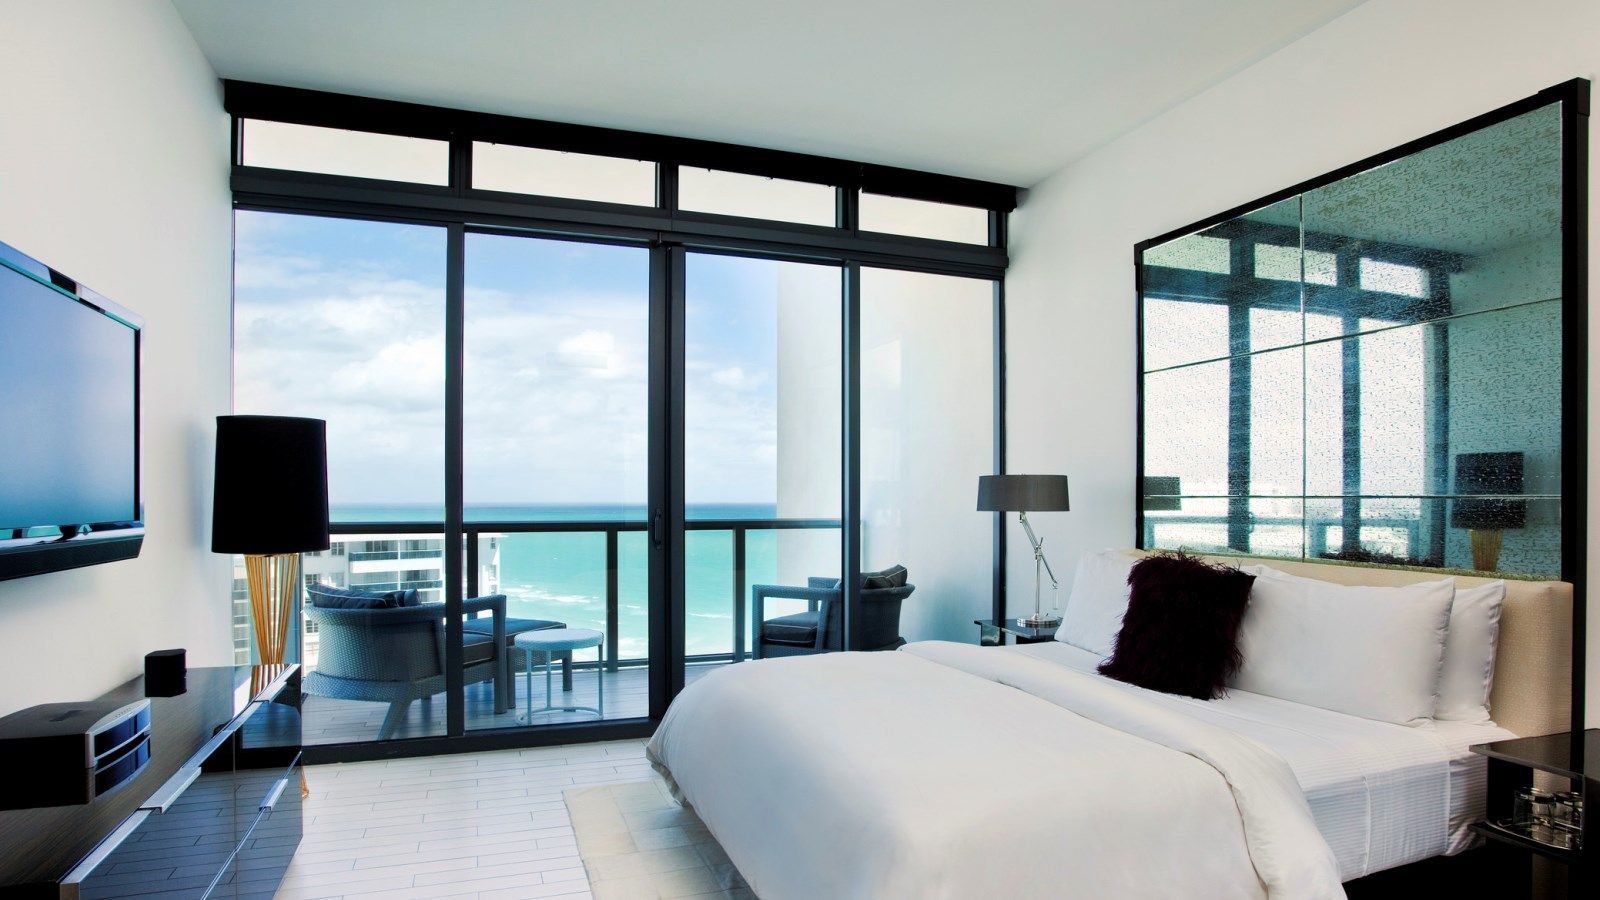 Sanctuary Ocean View Suite with balcony